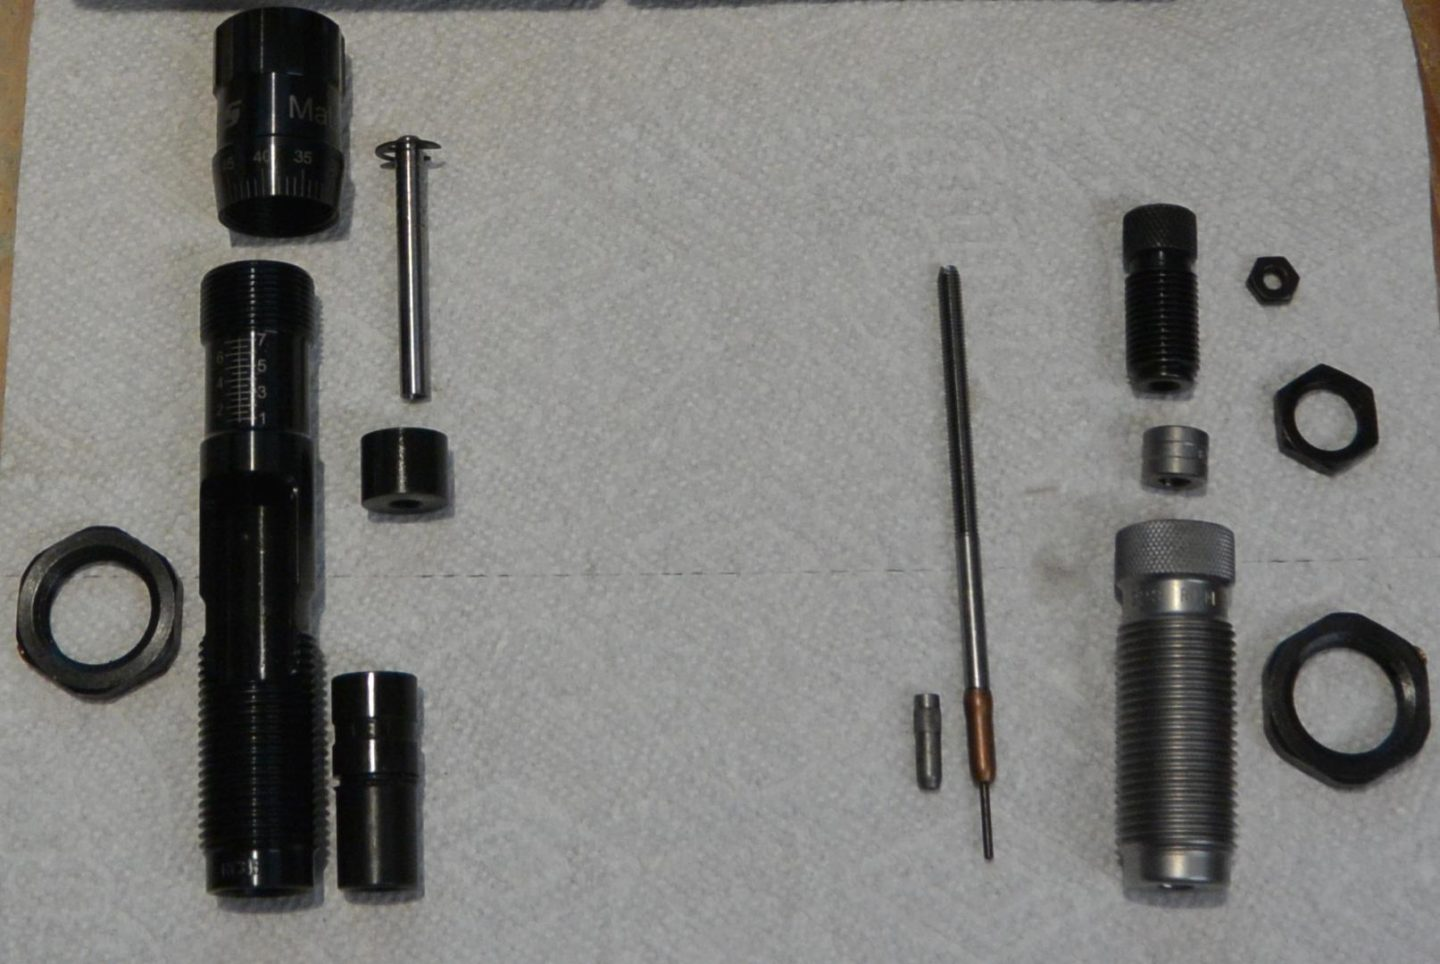 RCBS MatchMaster Competition seating and FL sizing dies disassembled